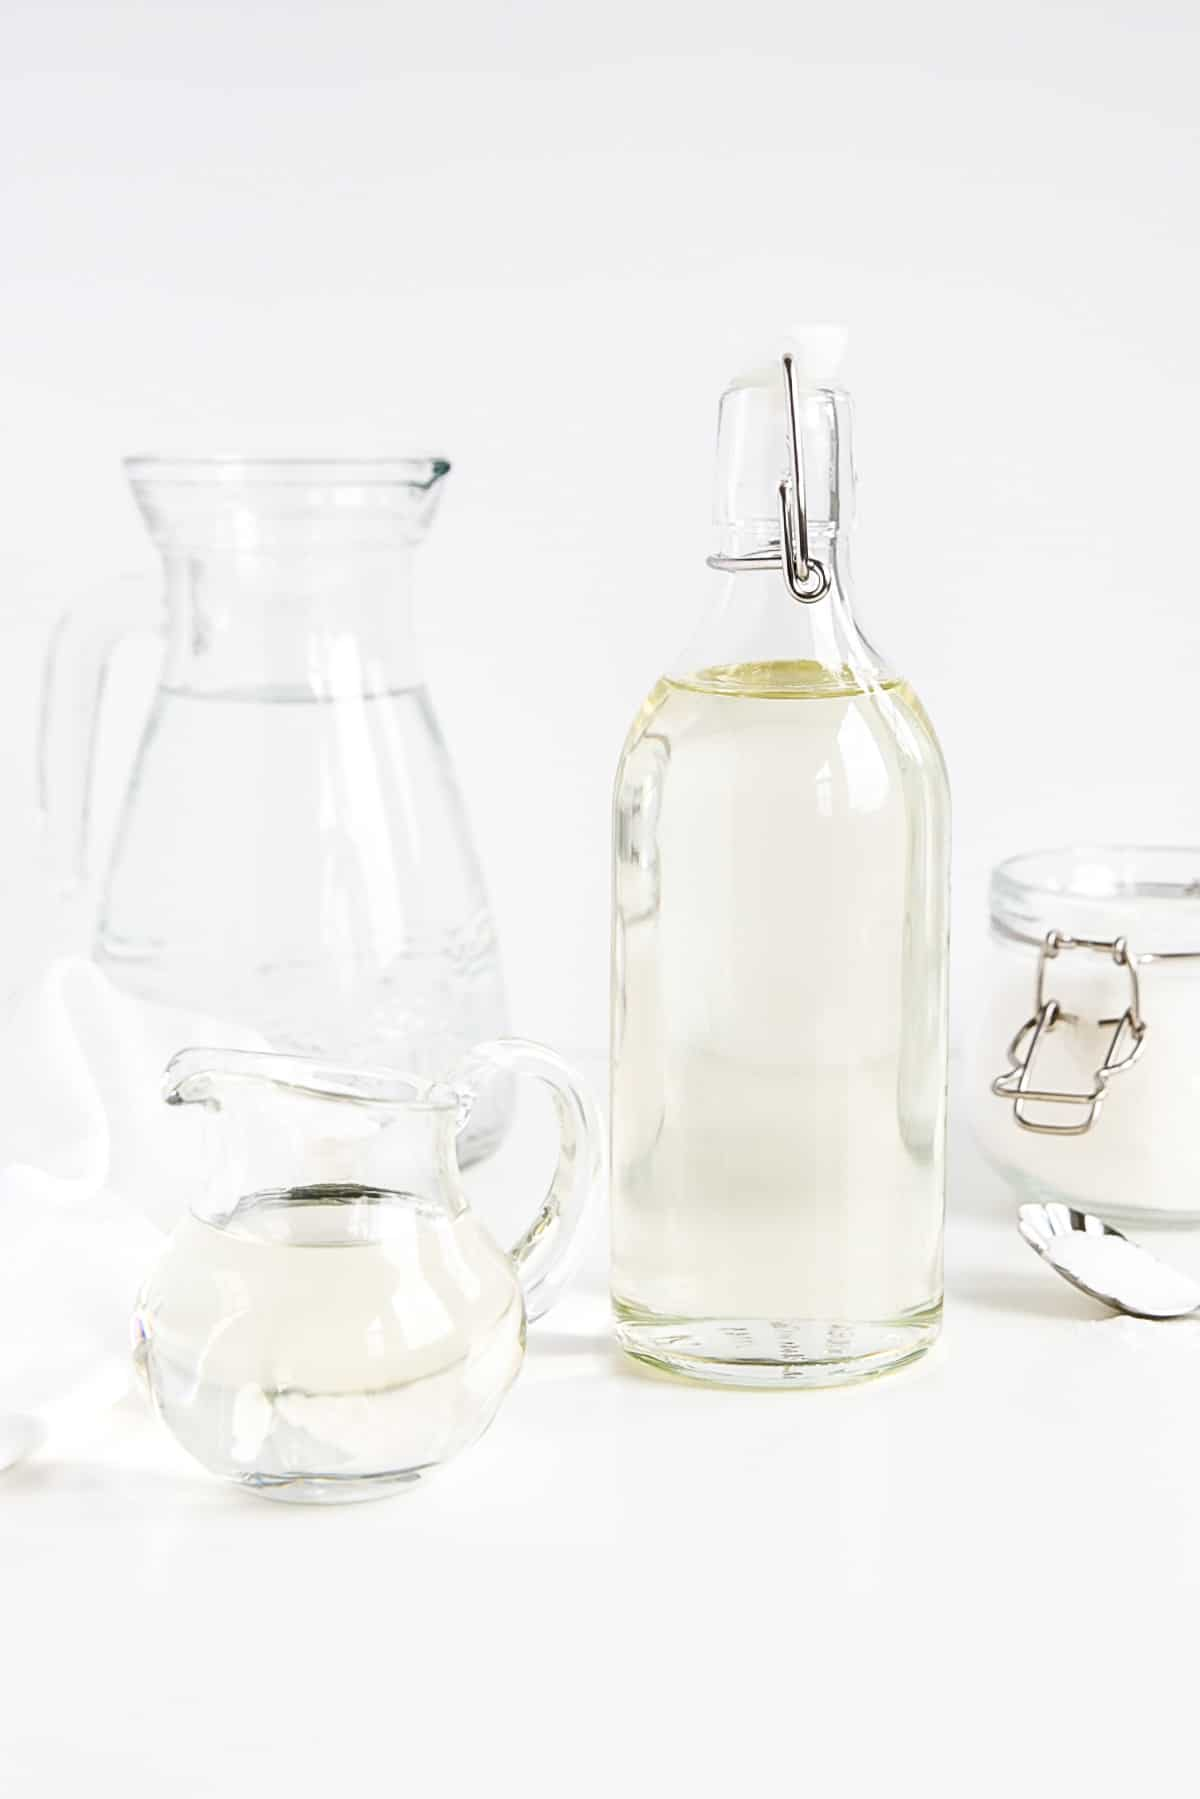 Simple syrup in a bottle shown with water and sugar.